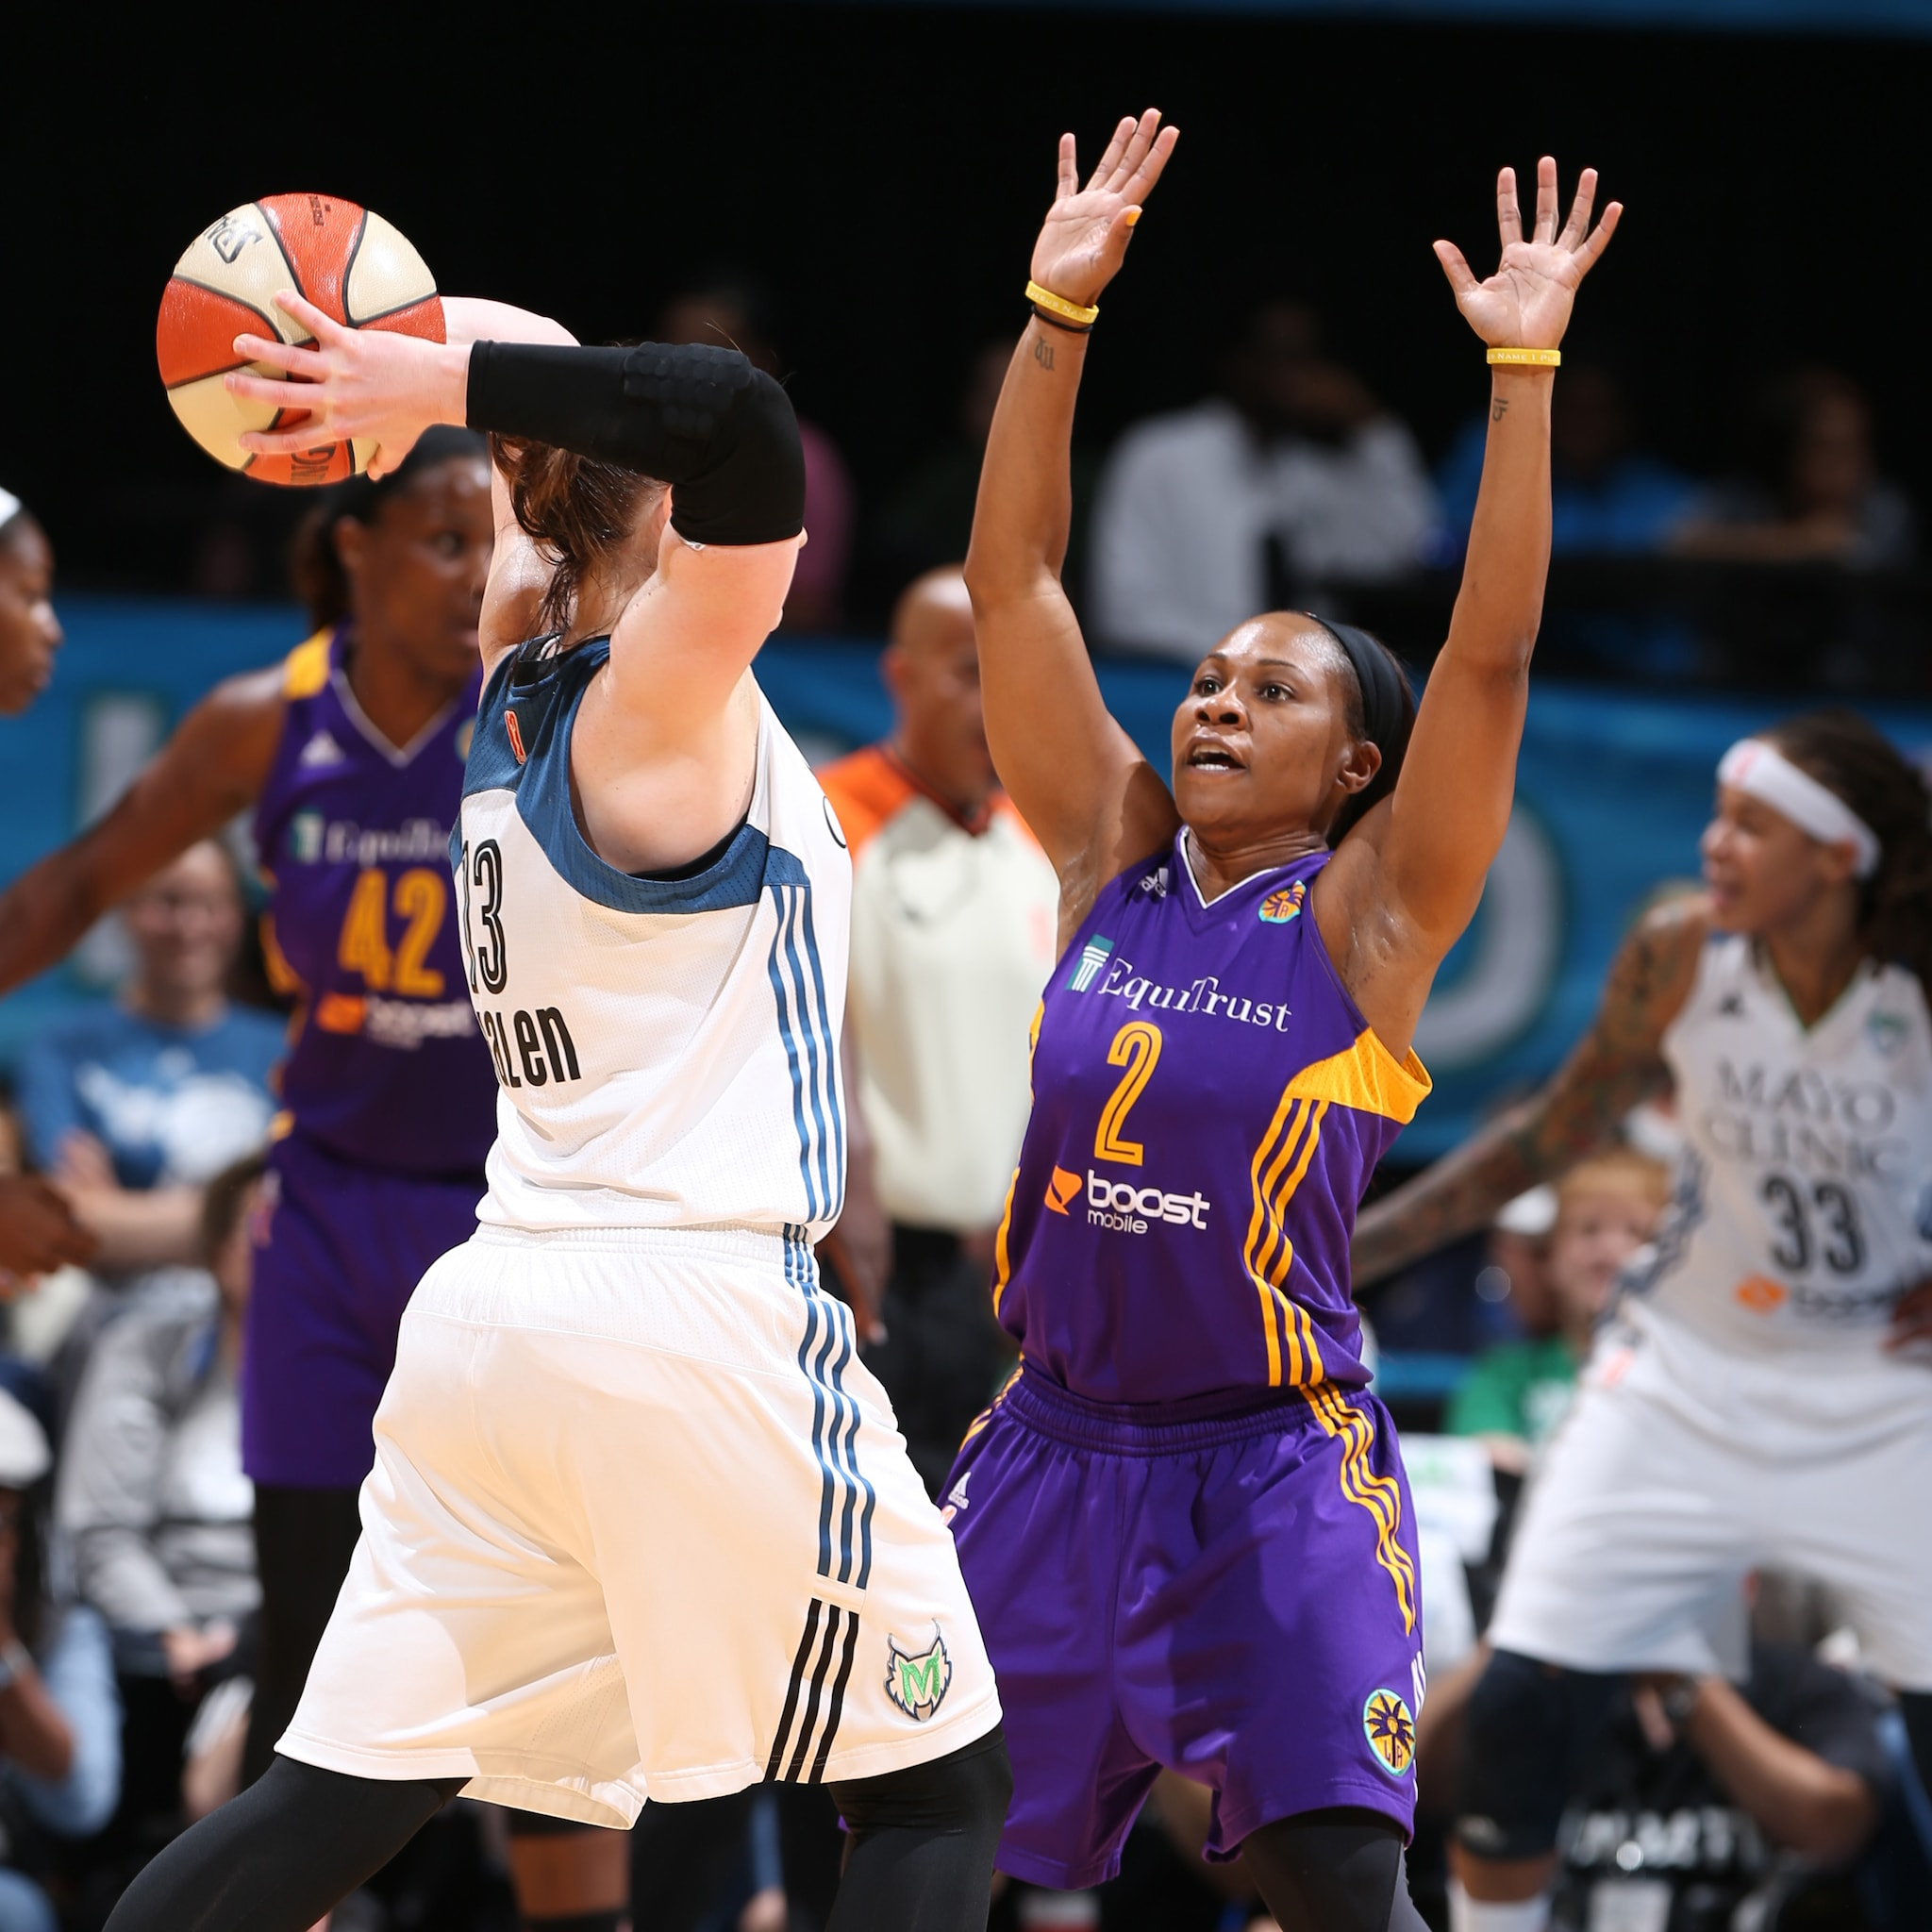 MINNEAPOLIS, MN - SEPTEMBER 18:  Temeka Johnson #2 of the Los Angeles Sparks defends against the Minnesota Lynx during Game 1 of the 2015 WNBA Western Conference Semifinal on September 18, 2015 at Target Center in Minneapolis, Minnesota.  NOTE TO USER: User expressly acknowledges and agrees that, by downloading and or using this Photograph, user is consenting to the terms and conditions of the Getty Images License Agreement. Mandatory Copyright Notice: Copyright 2015 NBAE (Photo by David Sherman/NBAE via Getty Images)